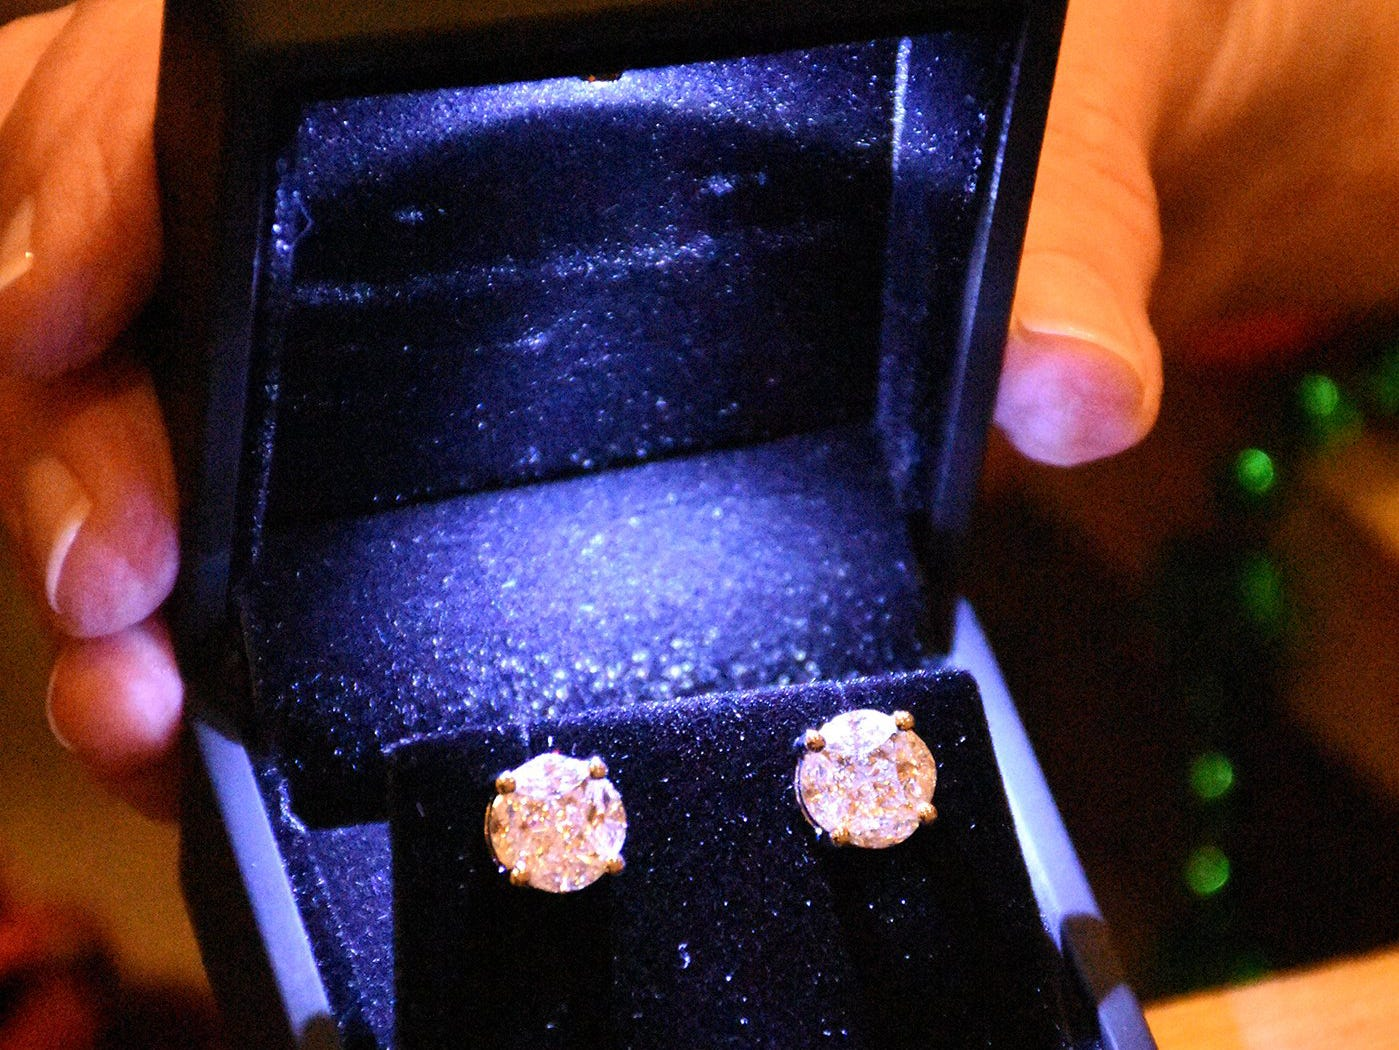 Two carat diamond earrings from Kathein Jewelers of Marco. The Marco Island unit of the American Cancer Society held the Imagination Ball Friday evening at the JW Marriott hotel, raising funds to continue the fight against cancer.